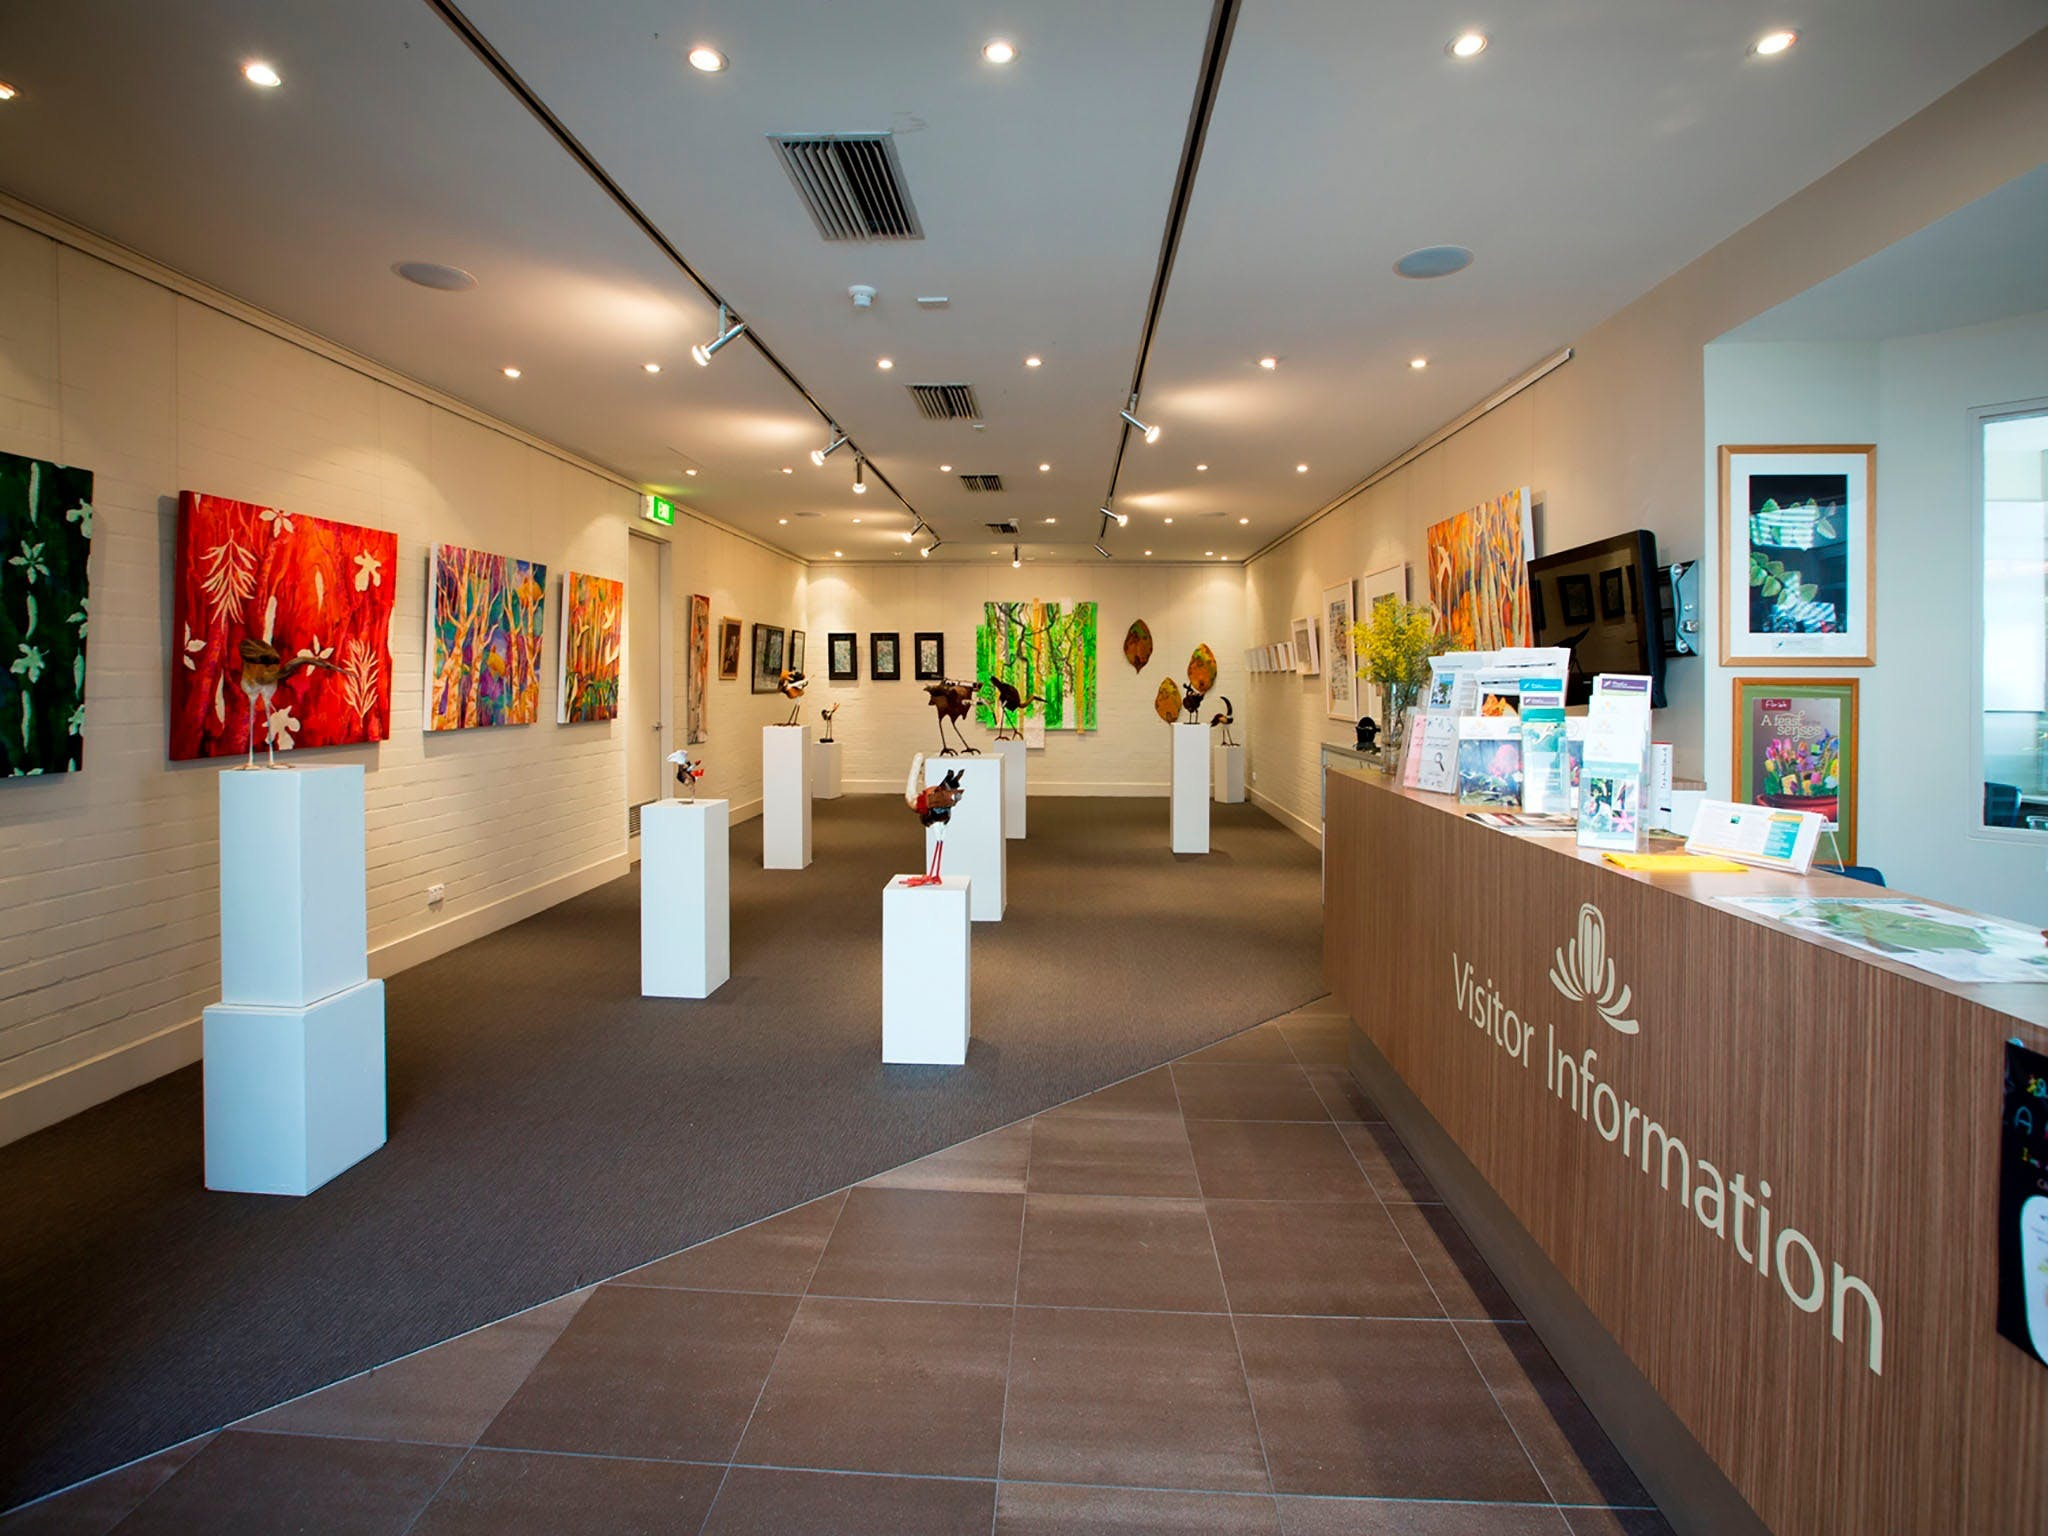 Australian National Botanic Gardens Visitor Centre Gallery - Accommodation Broome